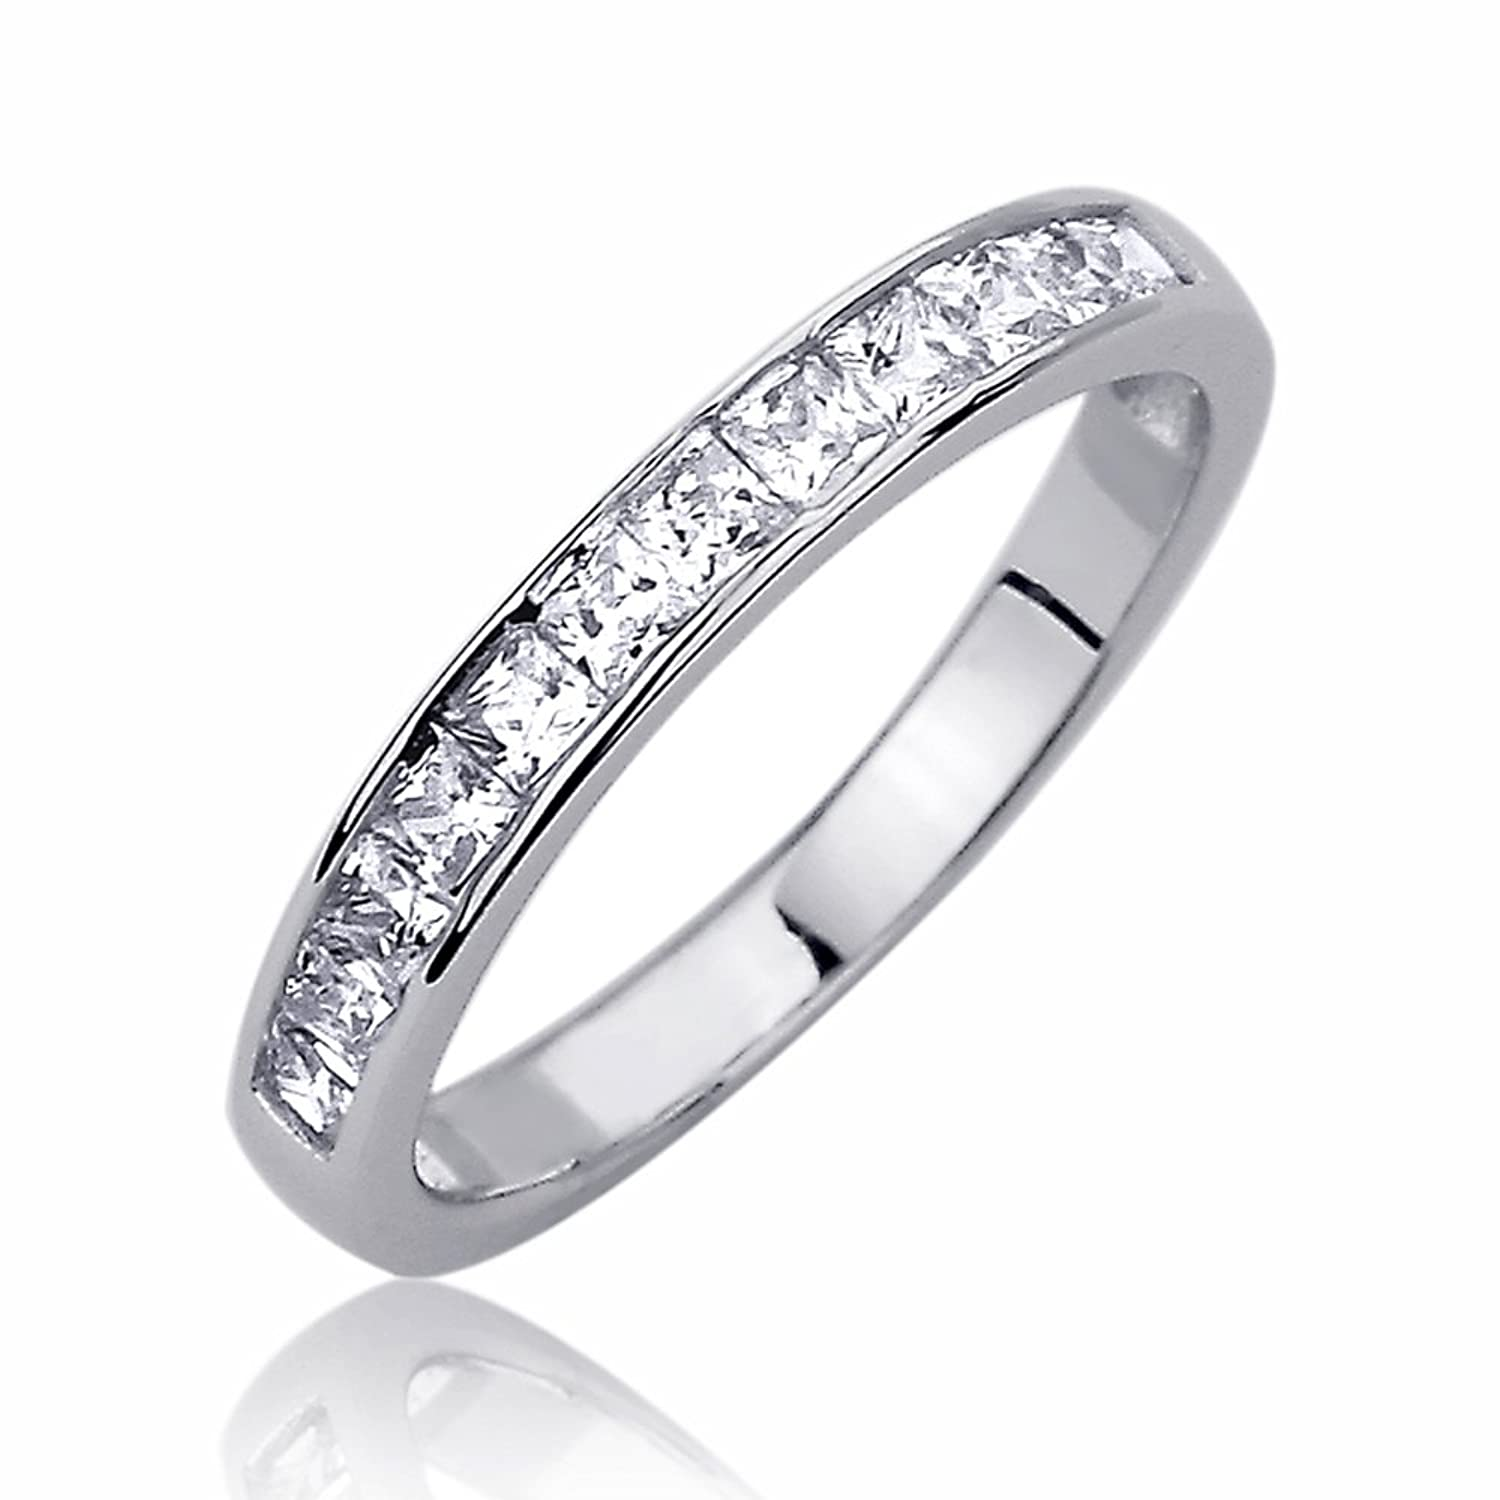 cubic jewelry cut overstock free over titanium band orders shipping watches eternity product zirconia bands princess ring on